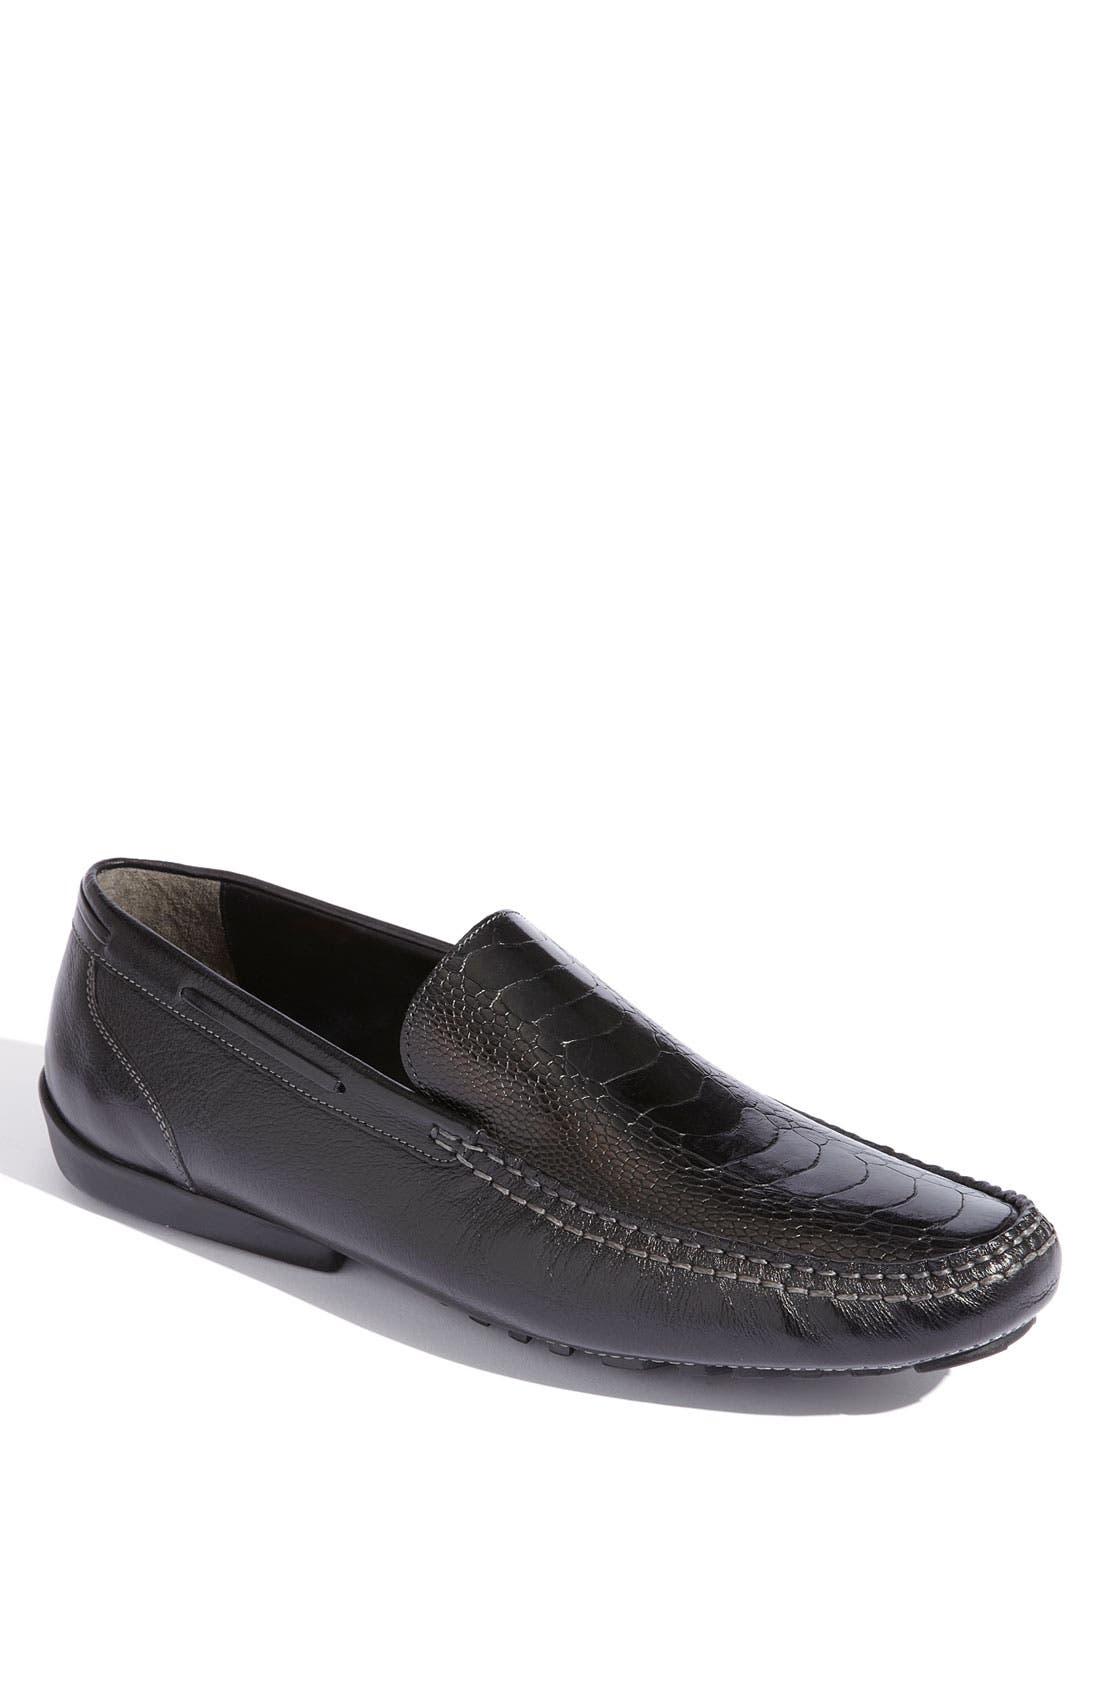 Alternate Image 1 Selected - Mezlan 'Tufo' Loafer